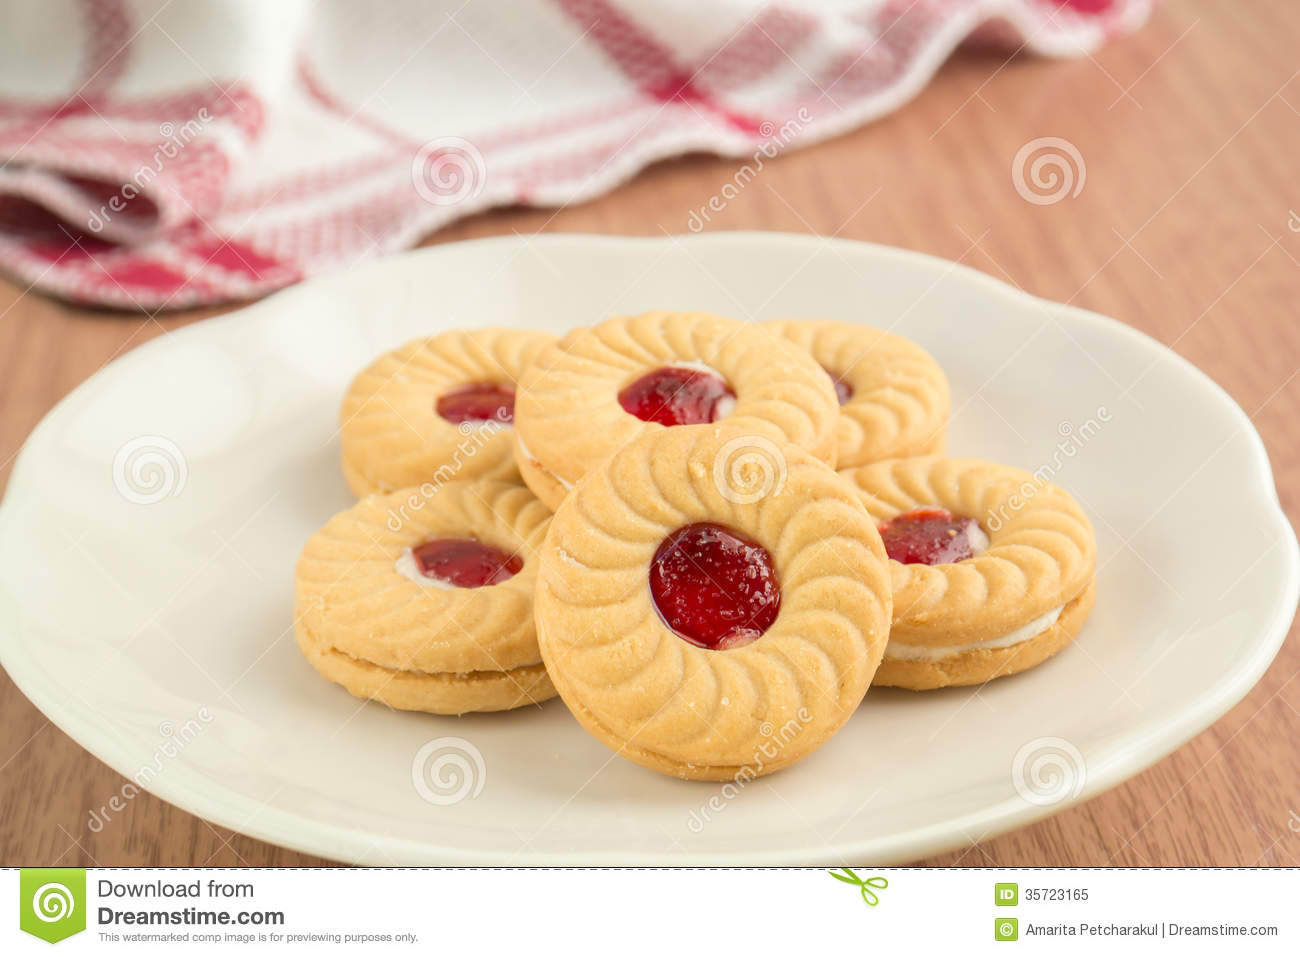 ... Sandwich Biscuits On Plate Royalty Free Stock Photo - Image: 35723165